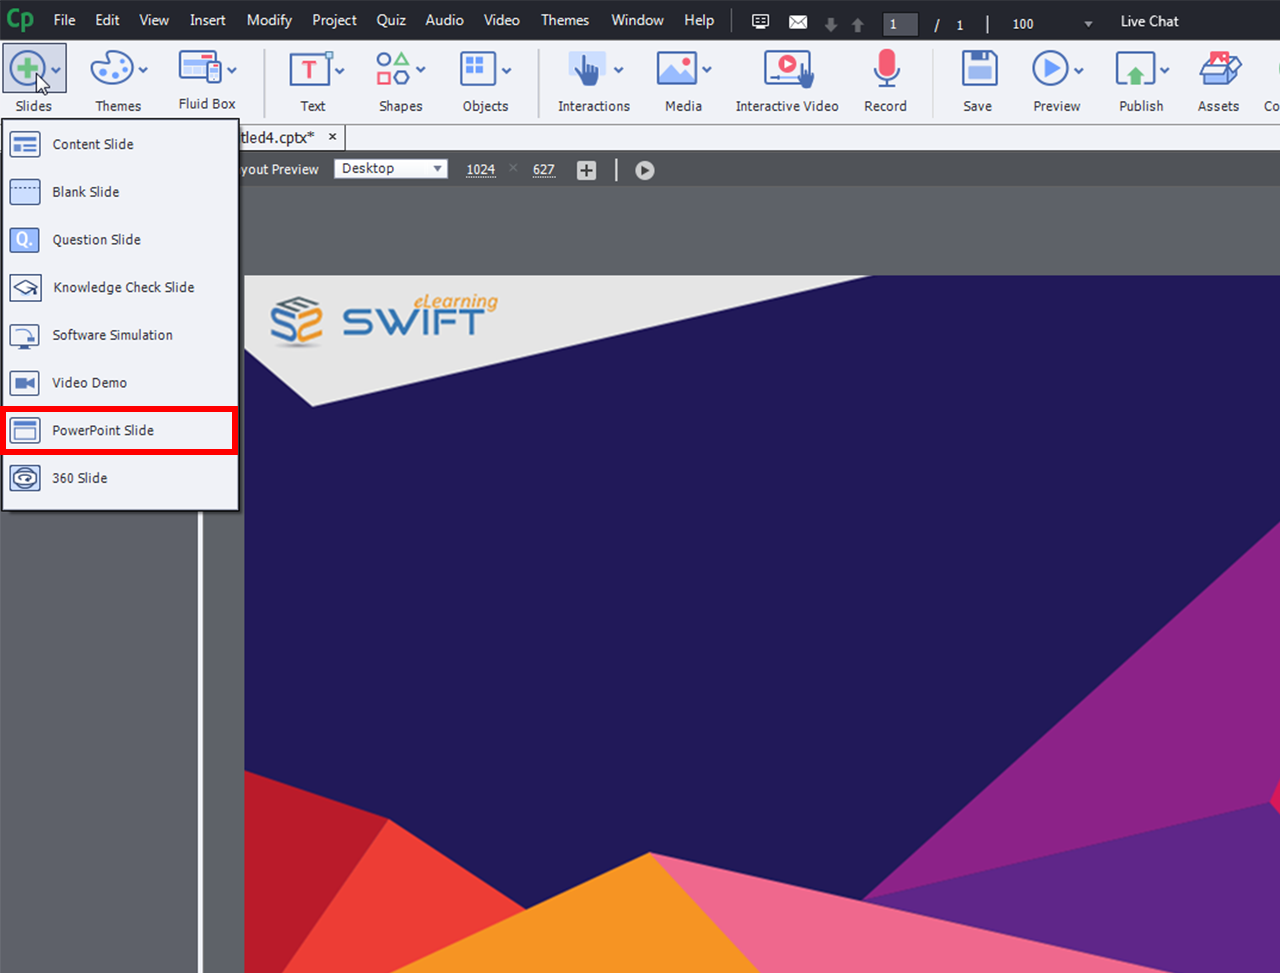 Adobe Captivate 2019 new features_4